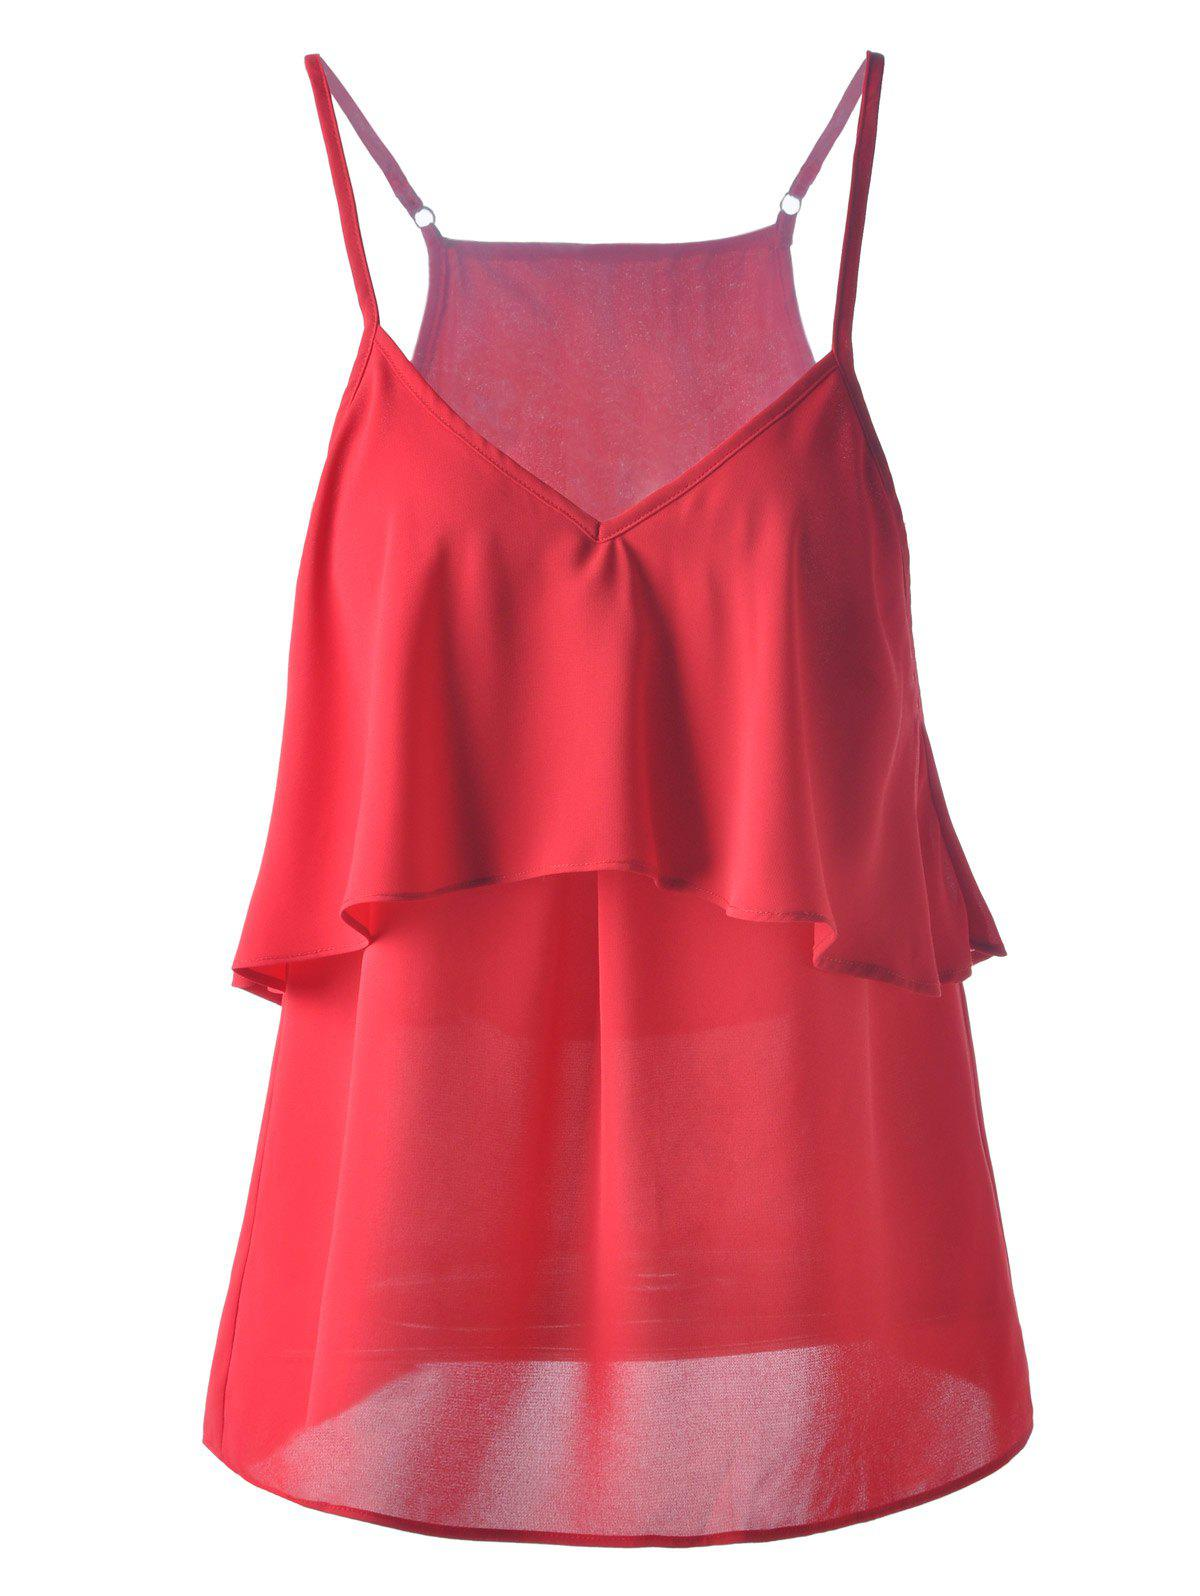 Fashionable Chiffon Flounce Spaghetti Strap Top For Women - DARK RED S